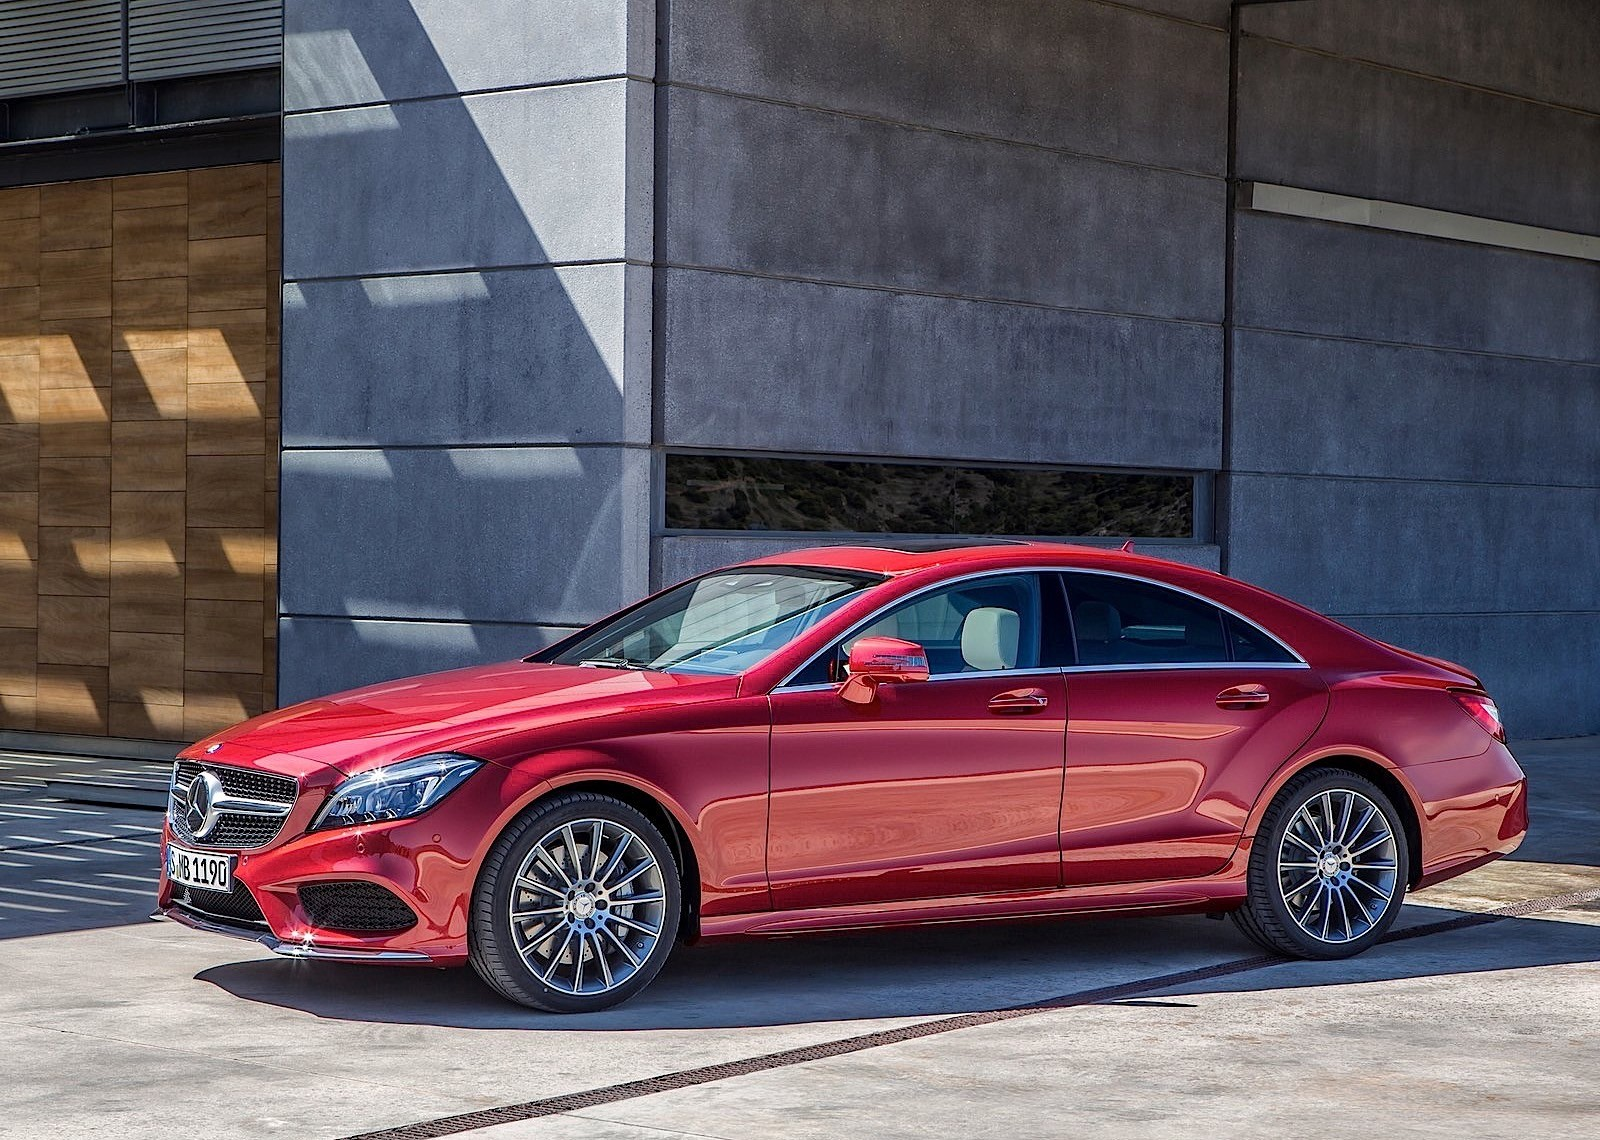 mercedes benz cls class c218 specs 2014 2015 2016 2017 2018 autoevolution. Black Bedroom Furniture Sets. Home Design Ideas